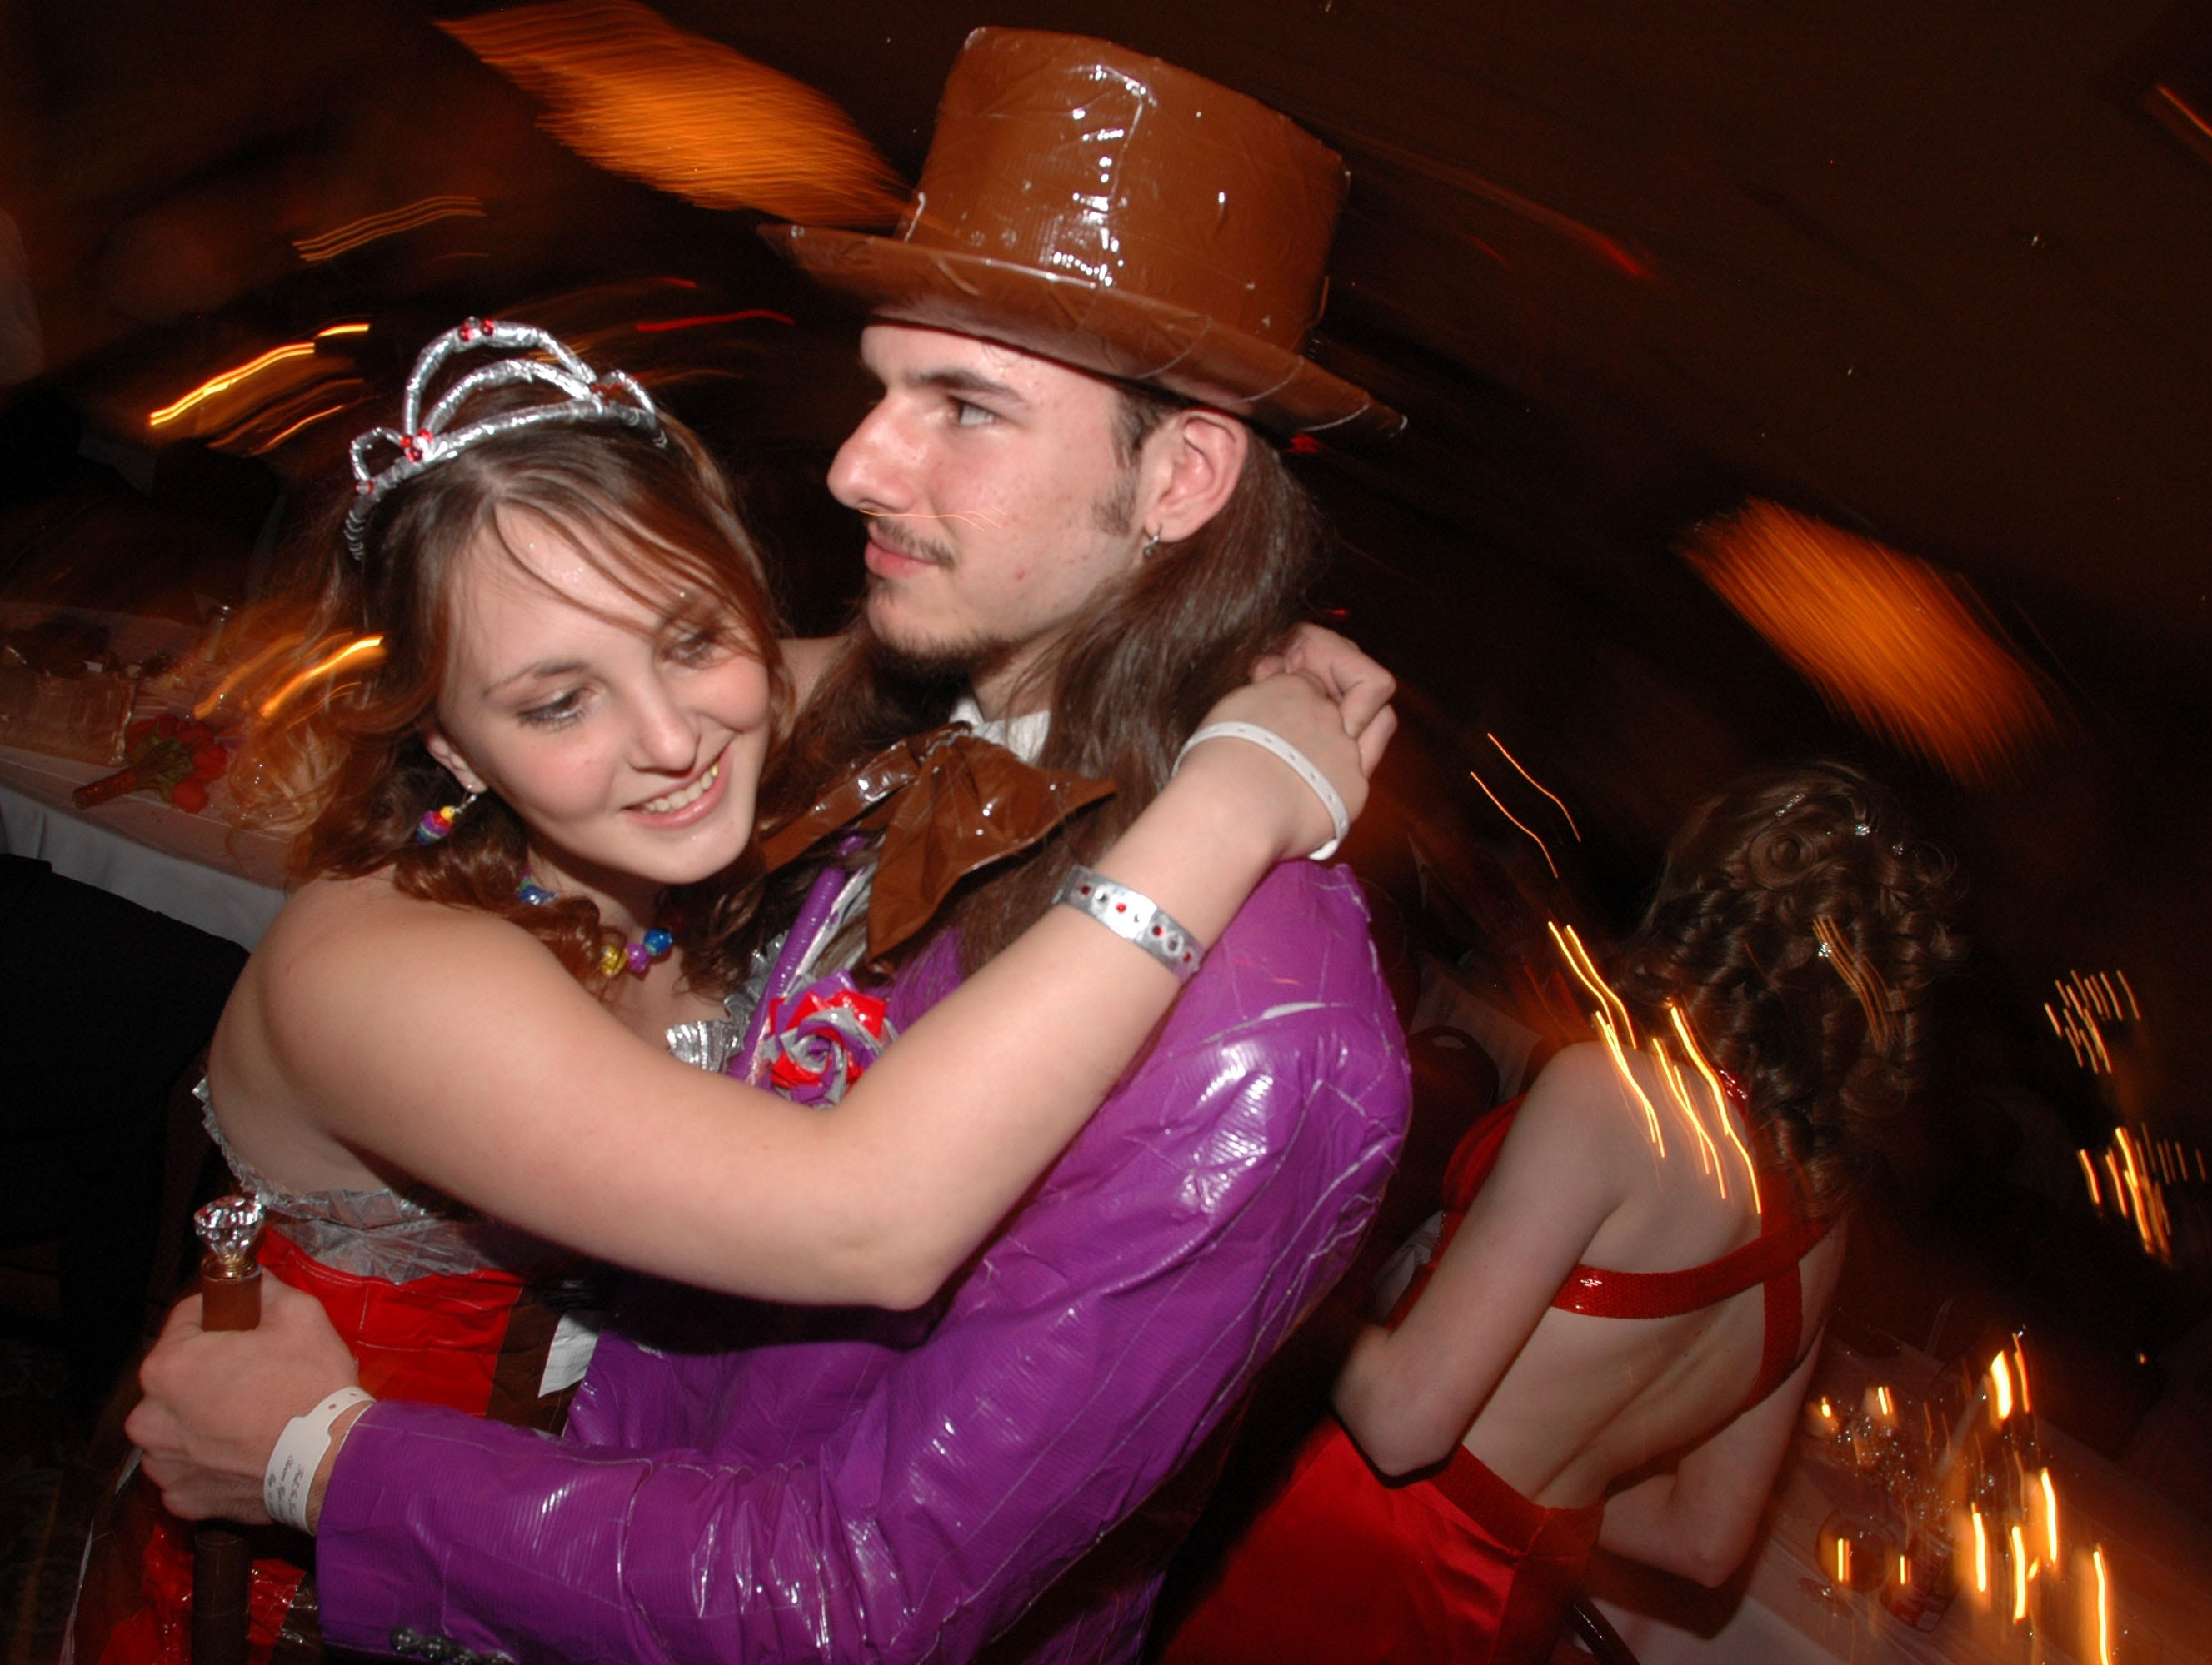 Krystle Gutman, left, gives her boyfriend T.J. Daugherty a hug inside the ballroom where the Clinton High School Prom was held Saturday night at the Crowne Plaza in Knoxville, Tenn. Gutman and Daugherty made their outfits using different color duck tape made to resemble the original Willy Wonka and the Chocolate Factory characters. 05/13/2006.